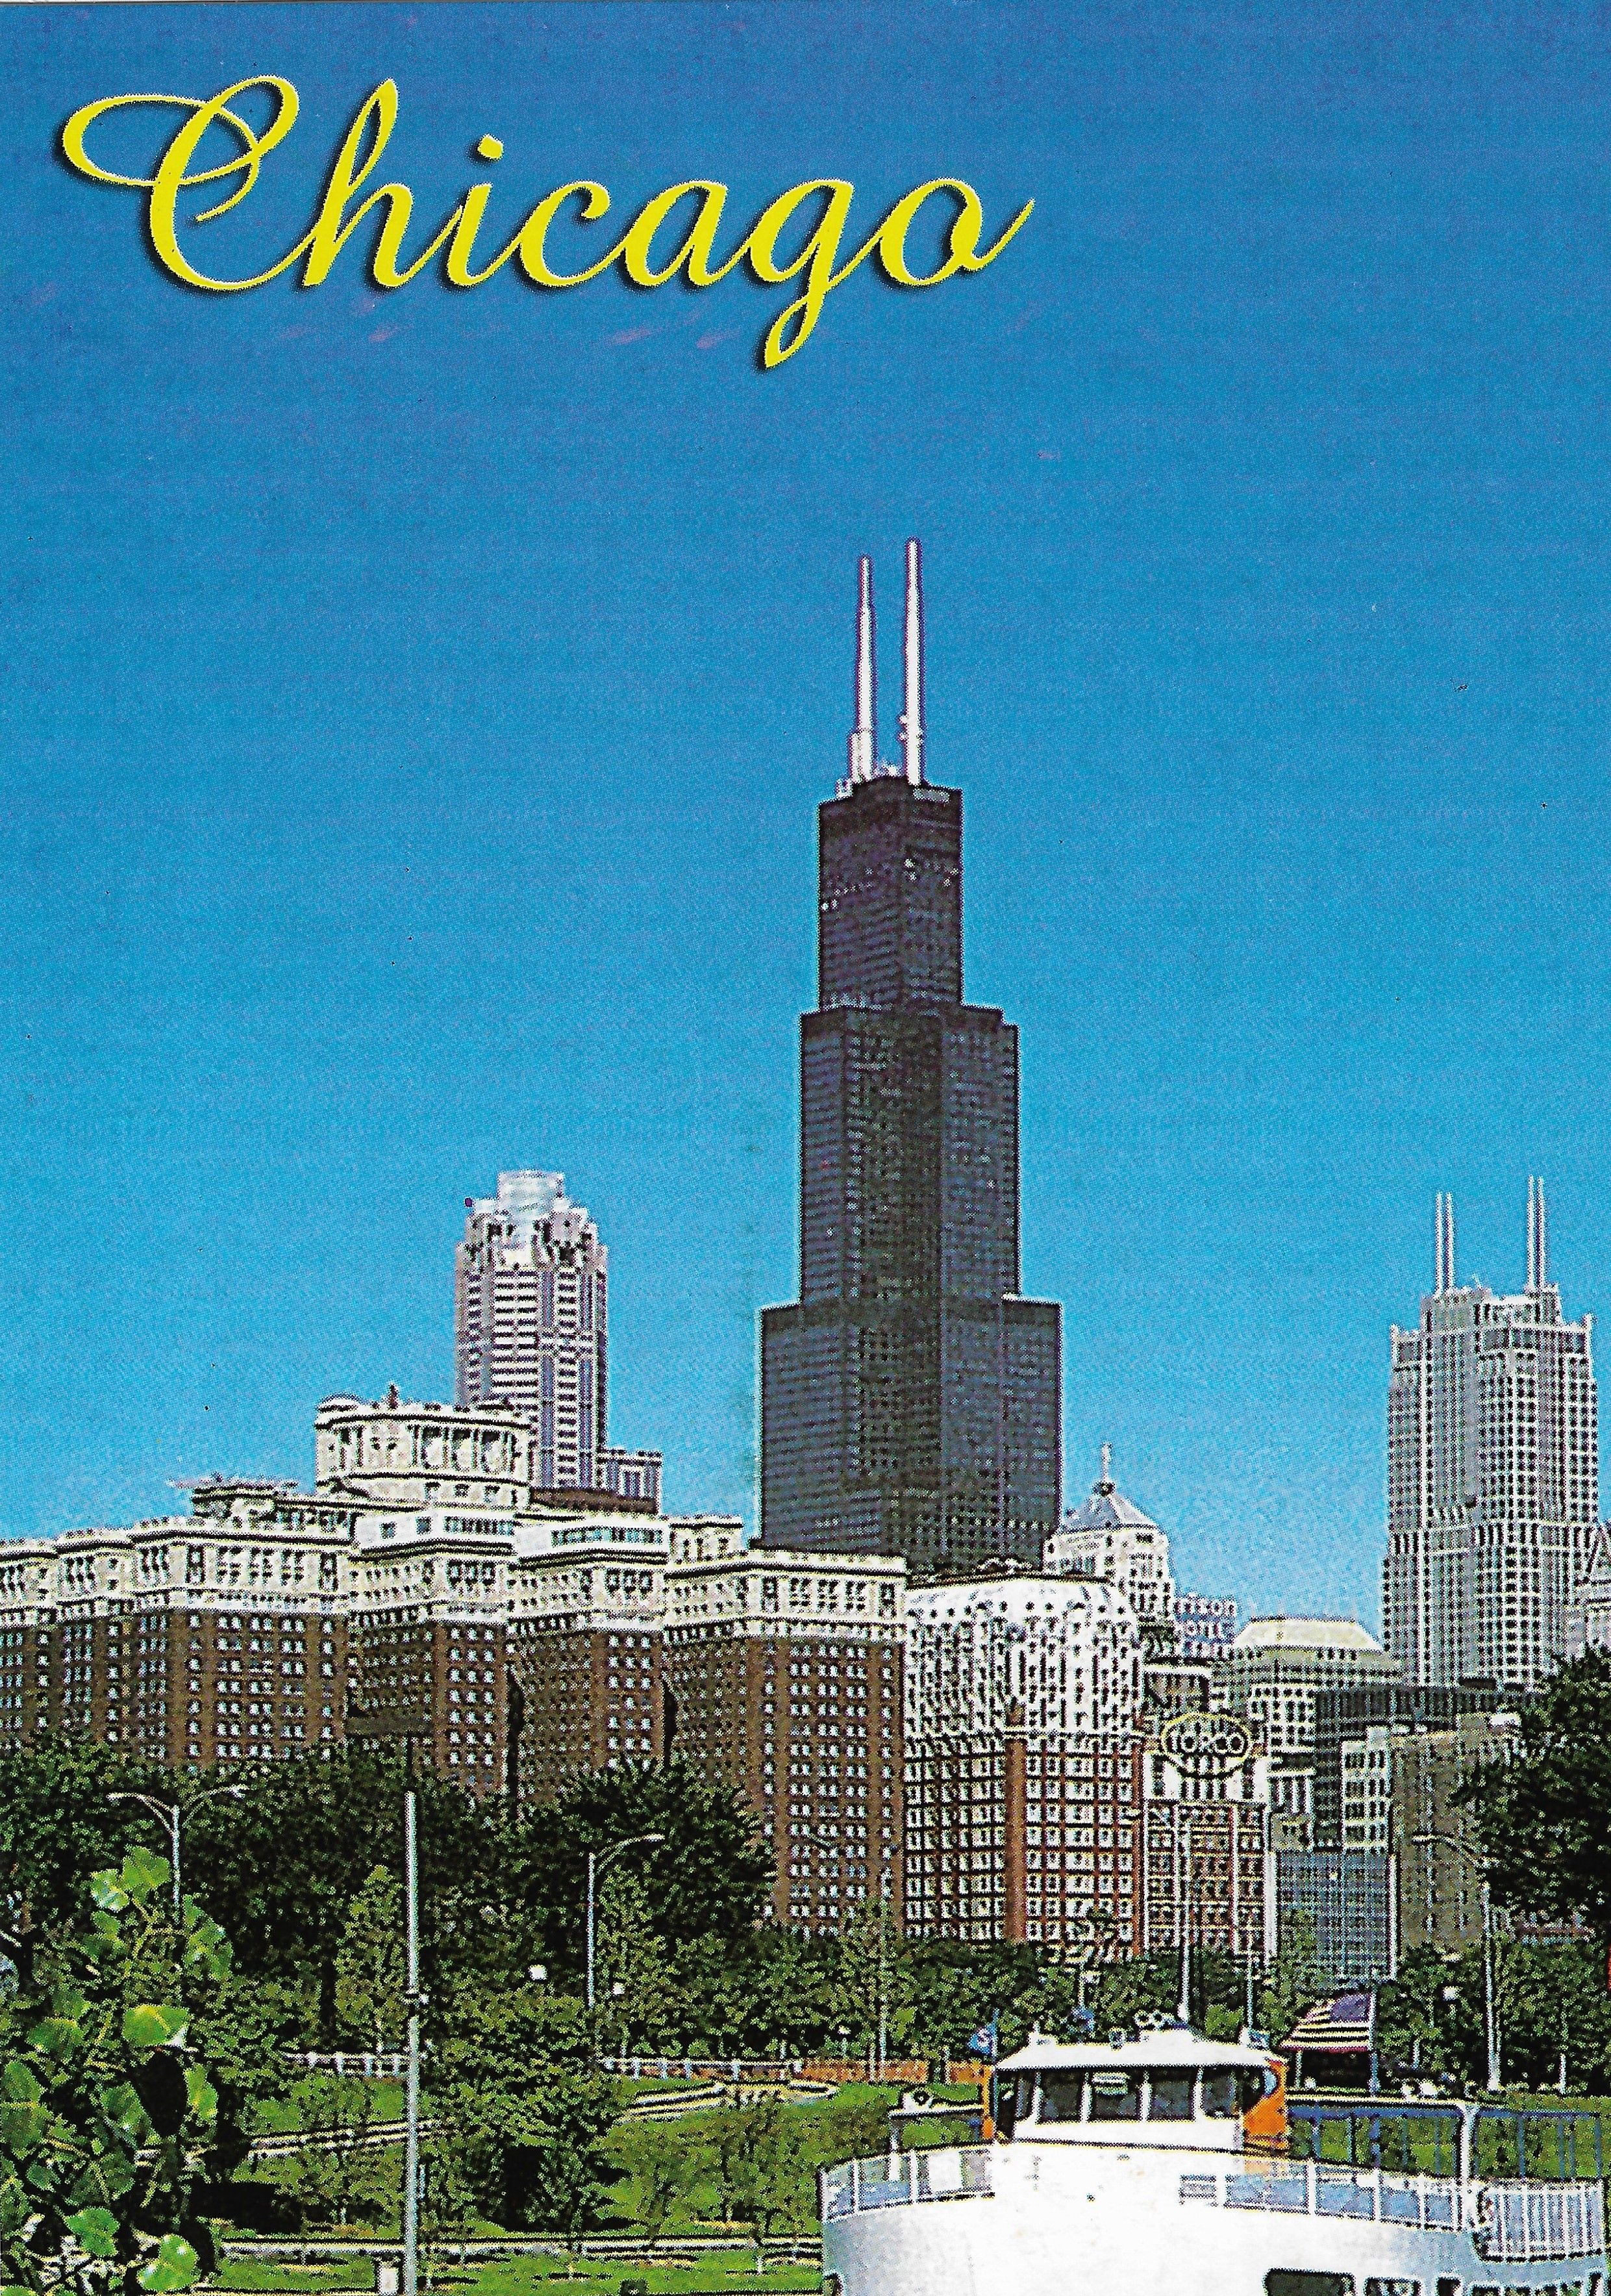 what is the sears tower called now